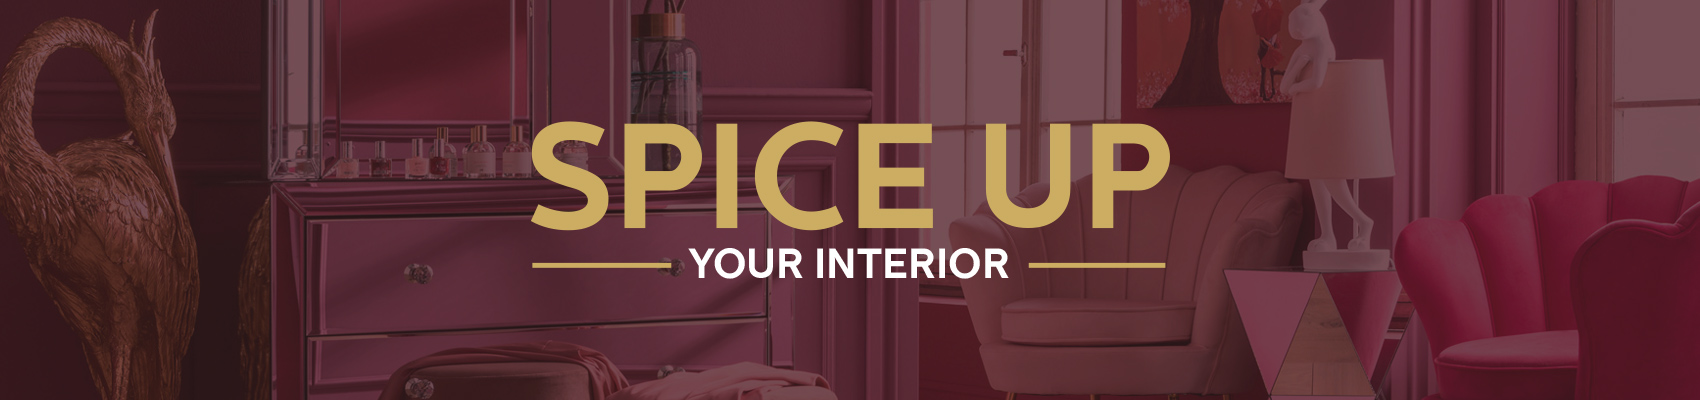 Spice Up Your Interior